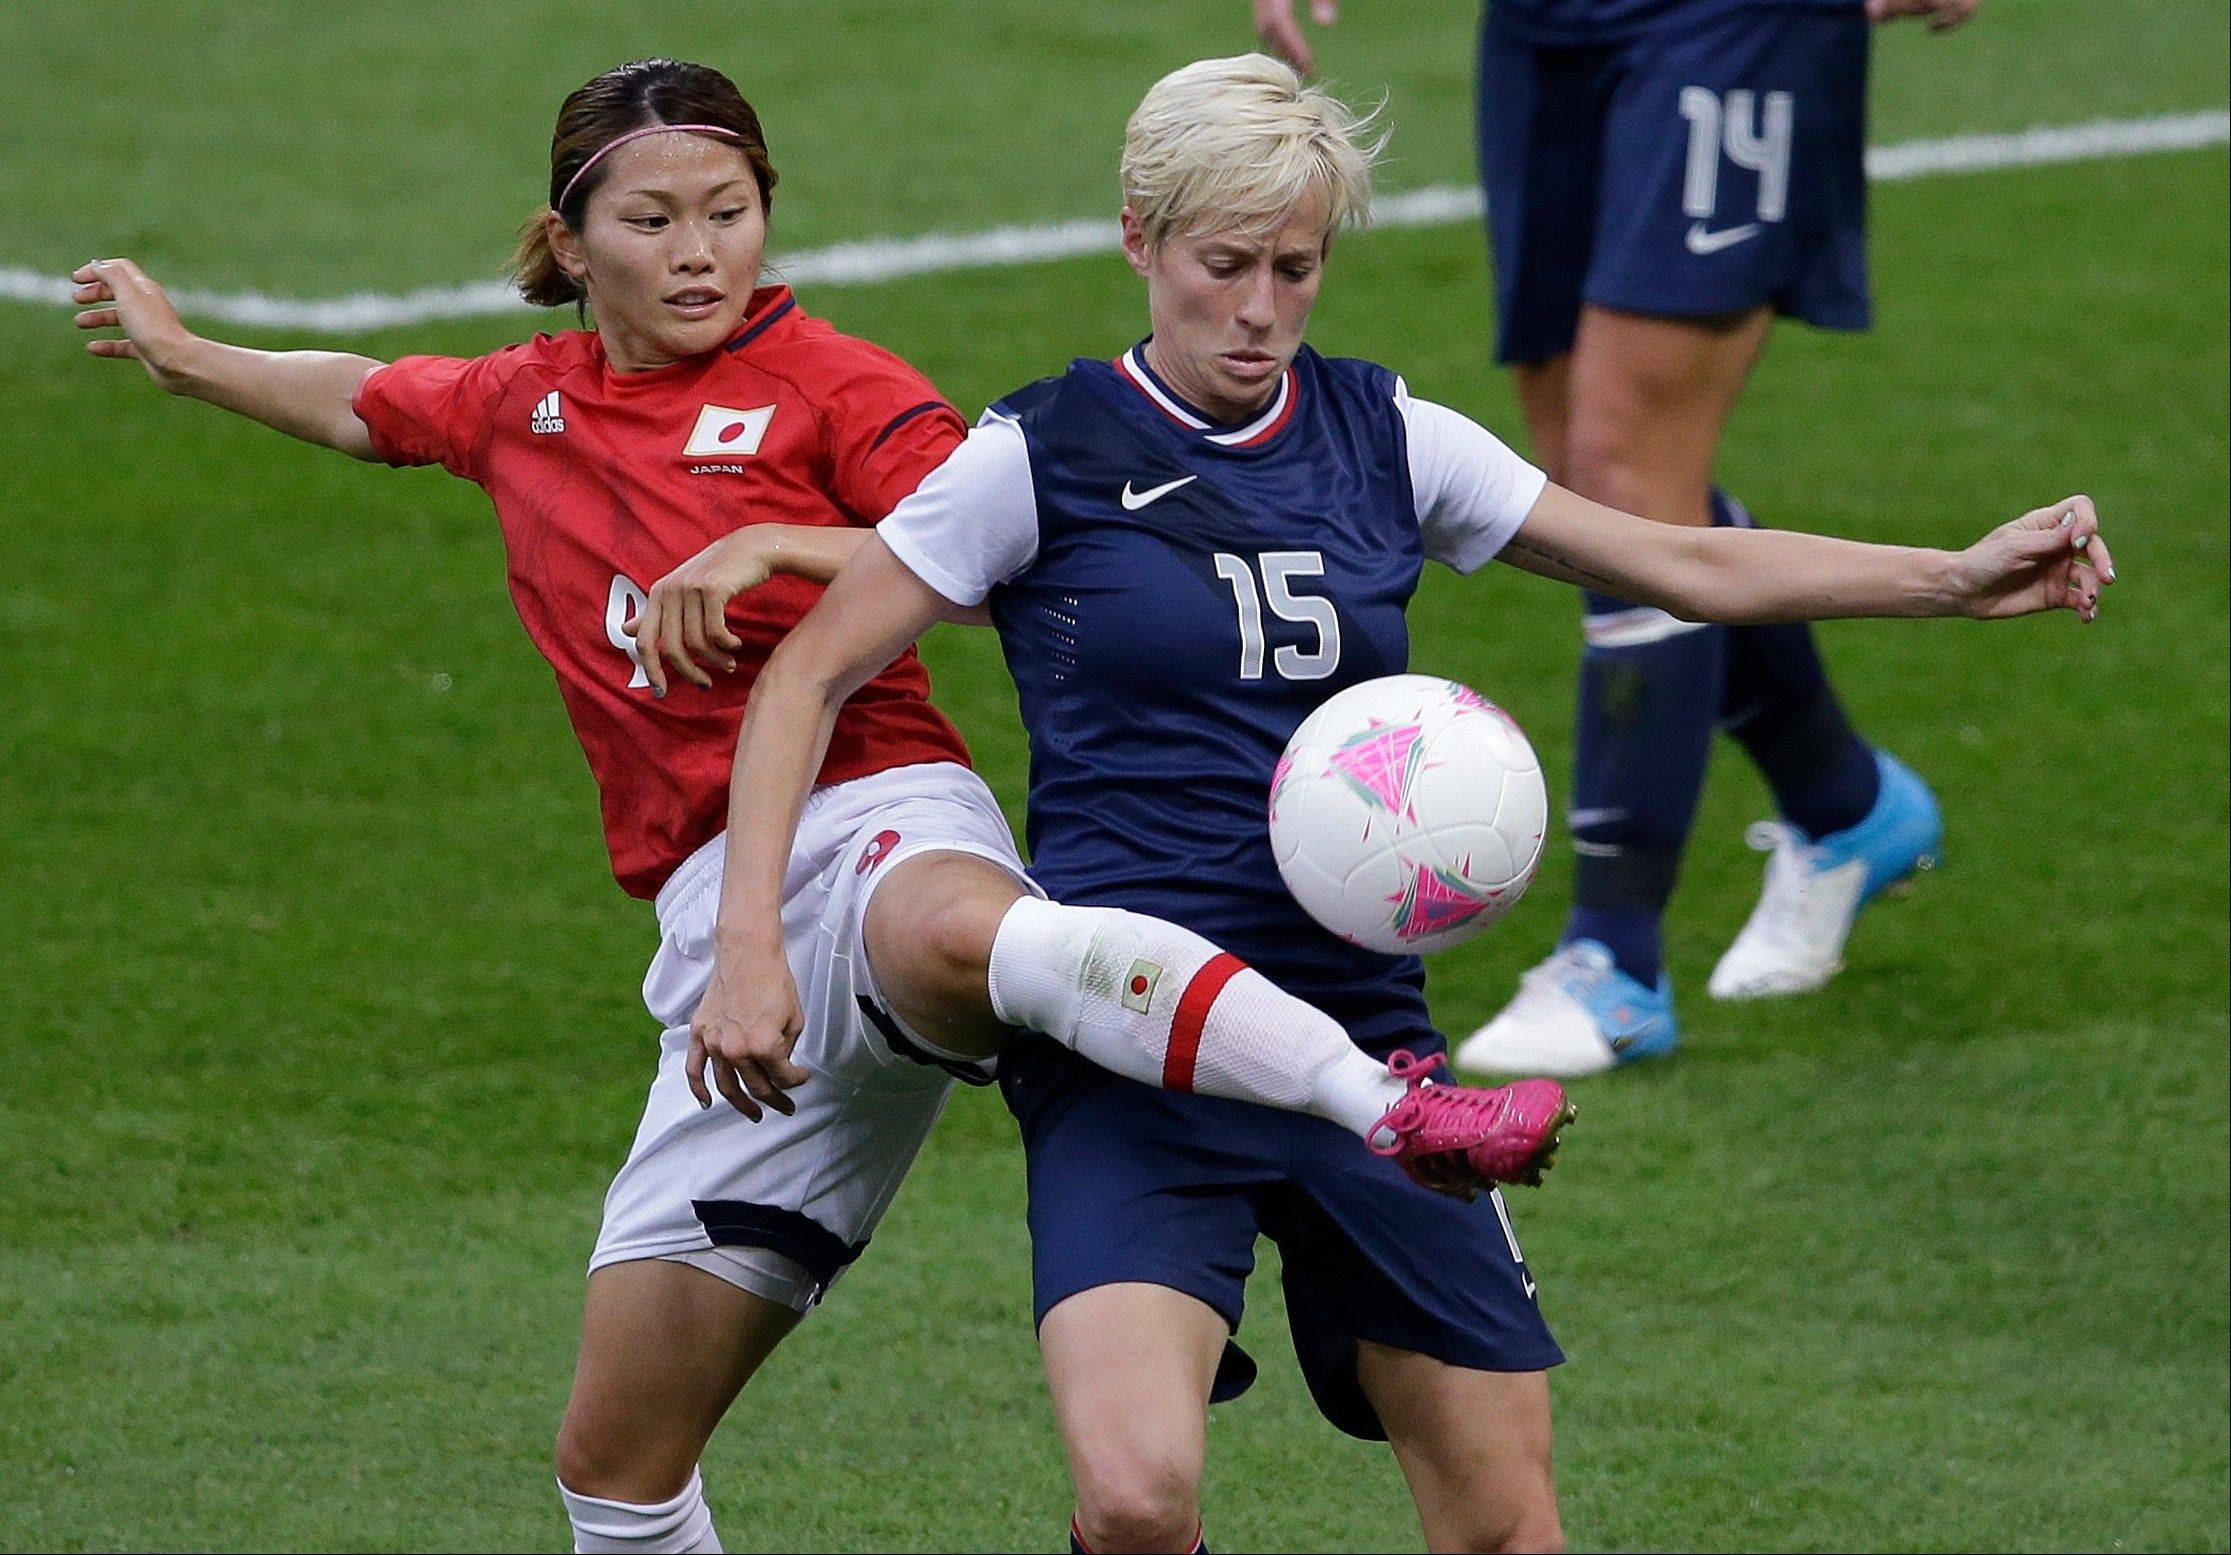 Megan Rapinoe, right, fights for possession of the ball during the women's soccer gold medal match at the London Olympics Thursday. Rapinoe, one of the stars of the U.S. team, is one of few Olympic athletes to have publicly stated they are gay.